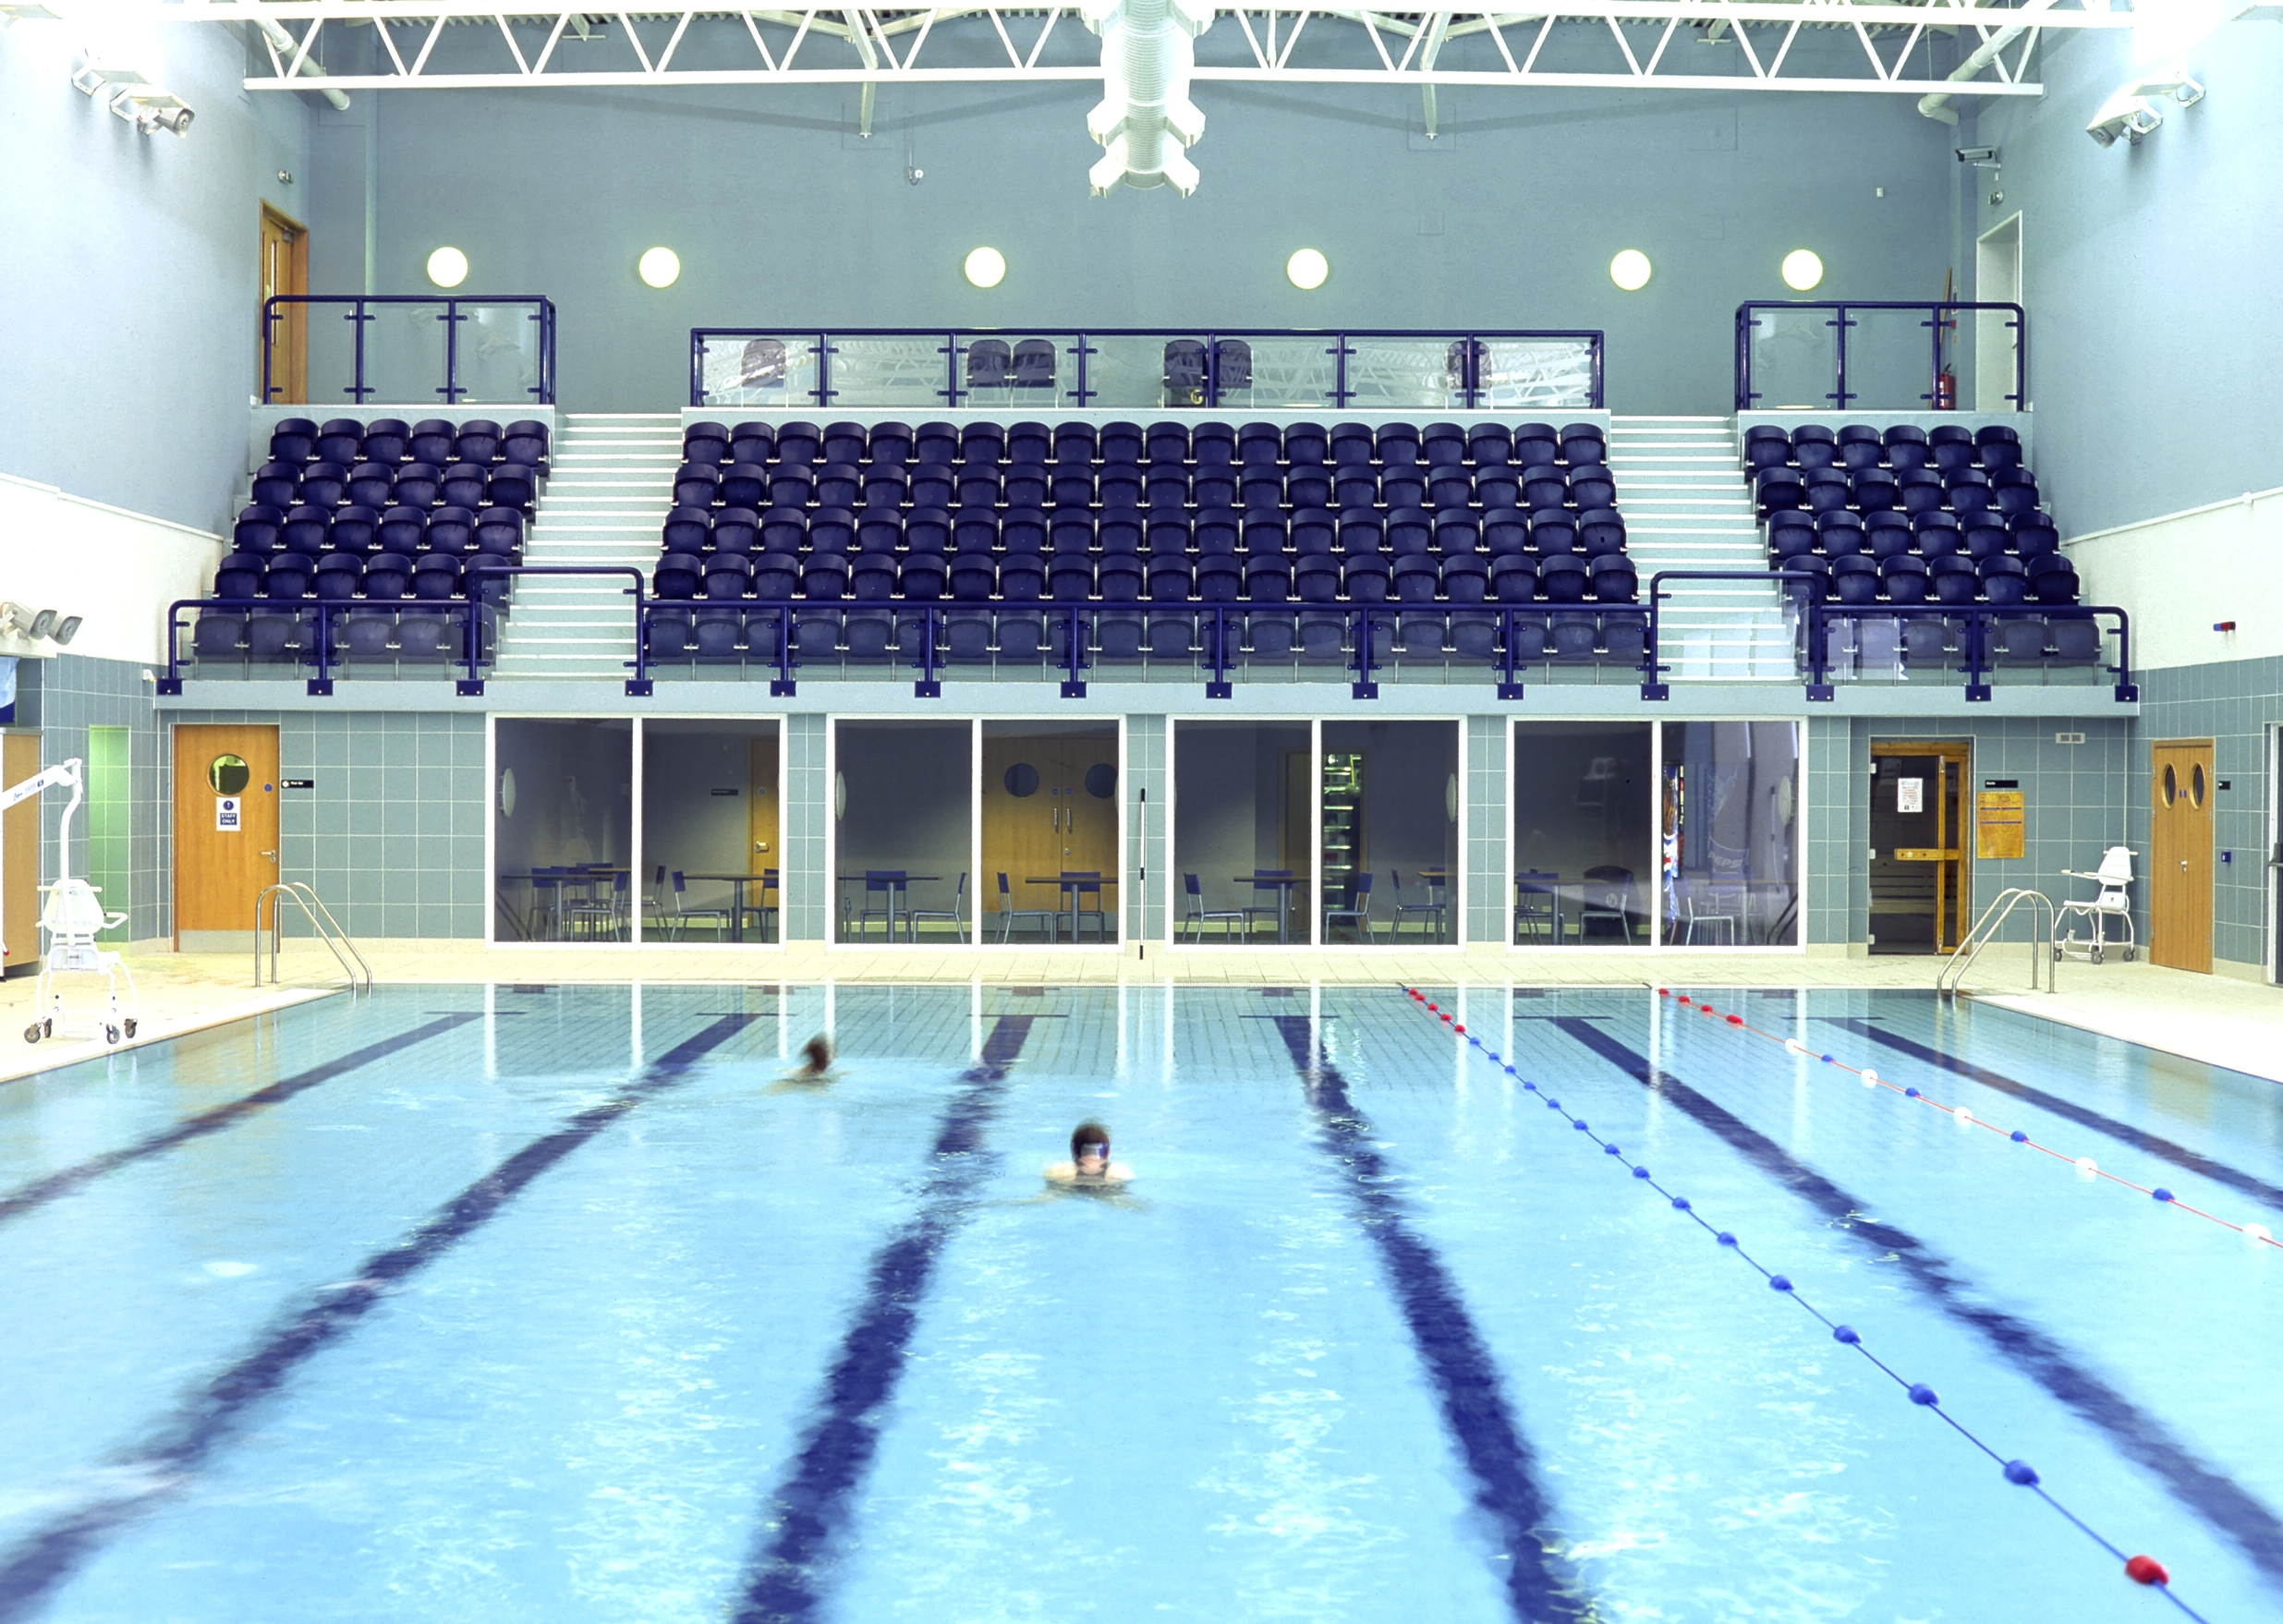 SMTri has joined up with Stoke Mandeville Stadium due to the great facilities on offer